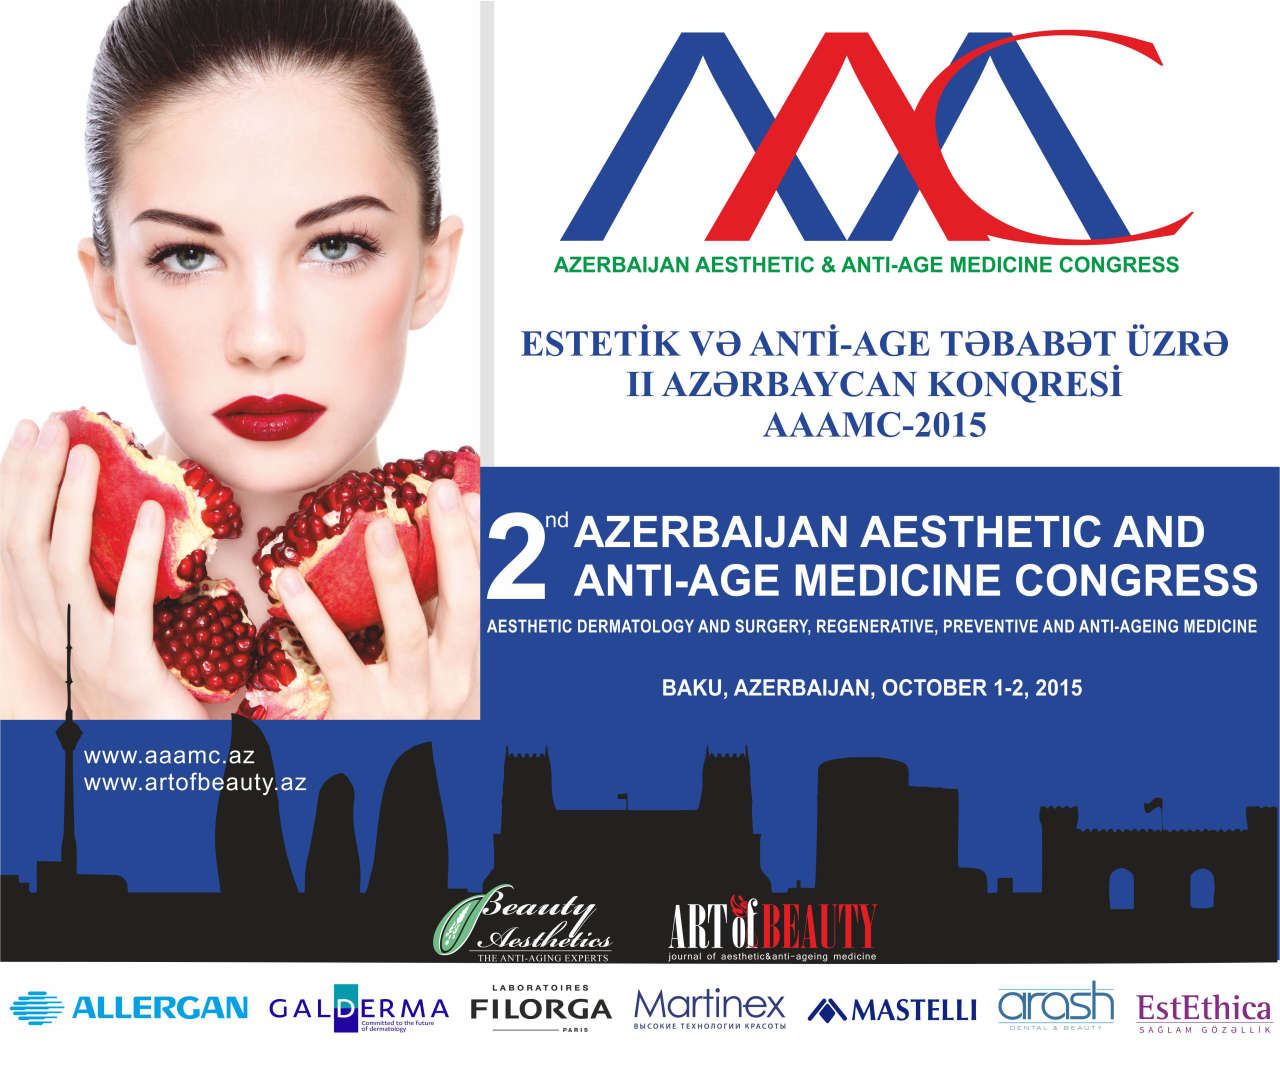 Baku to host 2nd Azerbaijan Aesthetic and Anti-Age Medicine Congress